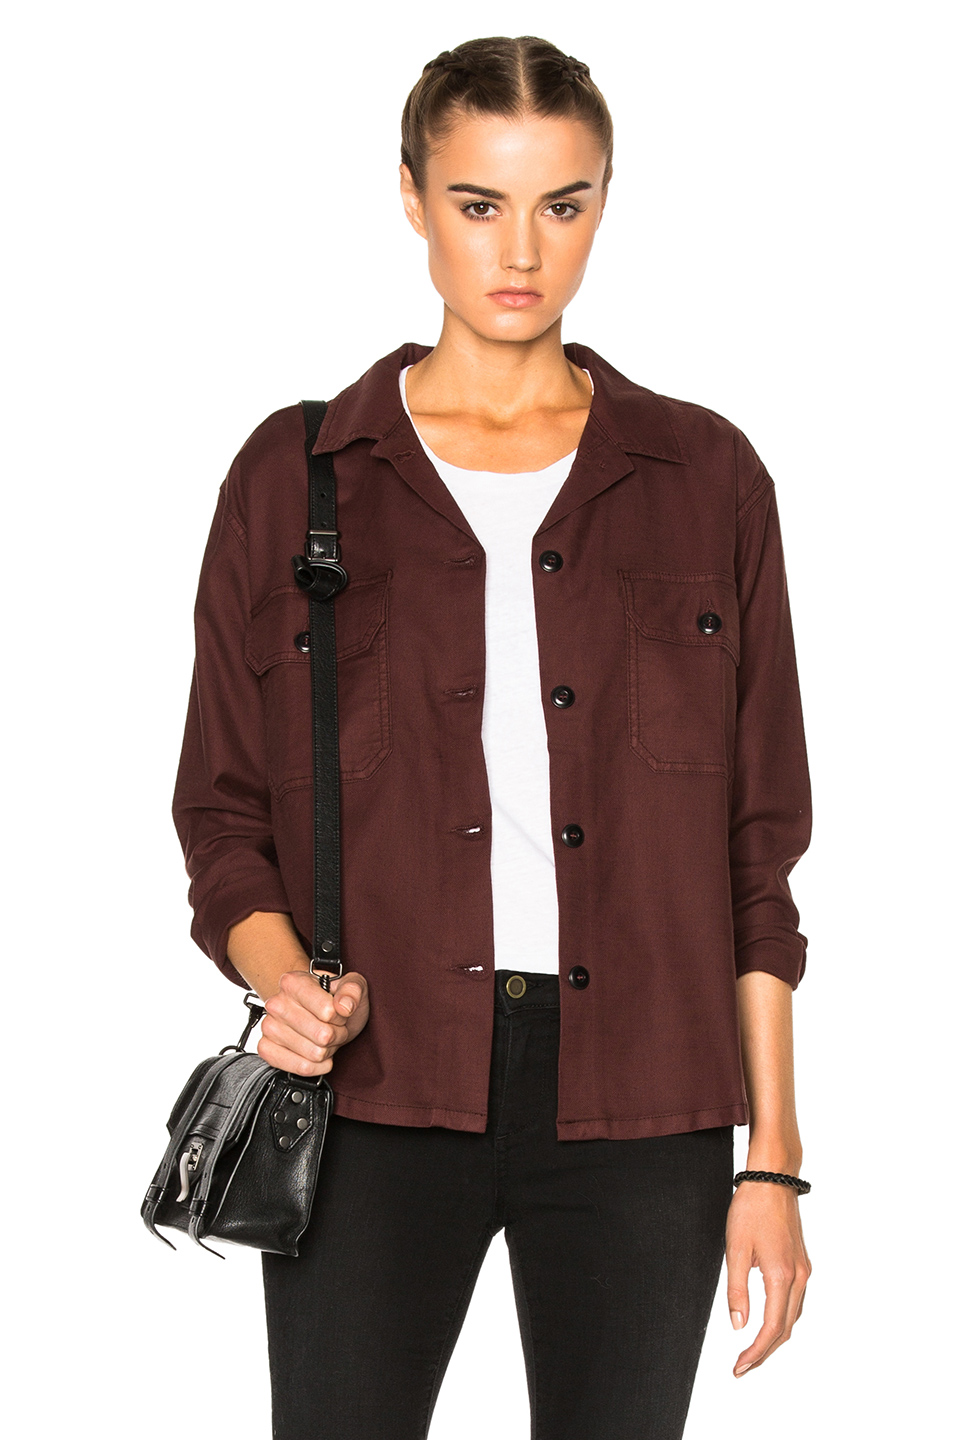 The Great Army Shirt Jacket in Brown